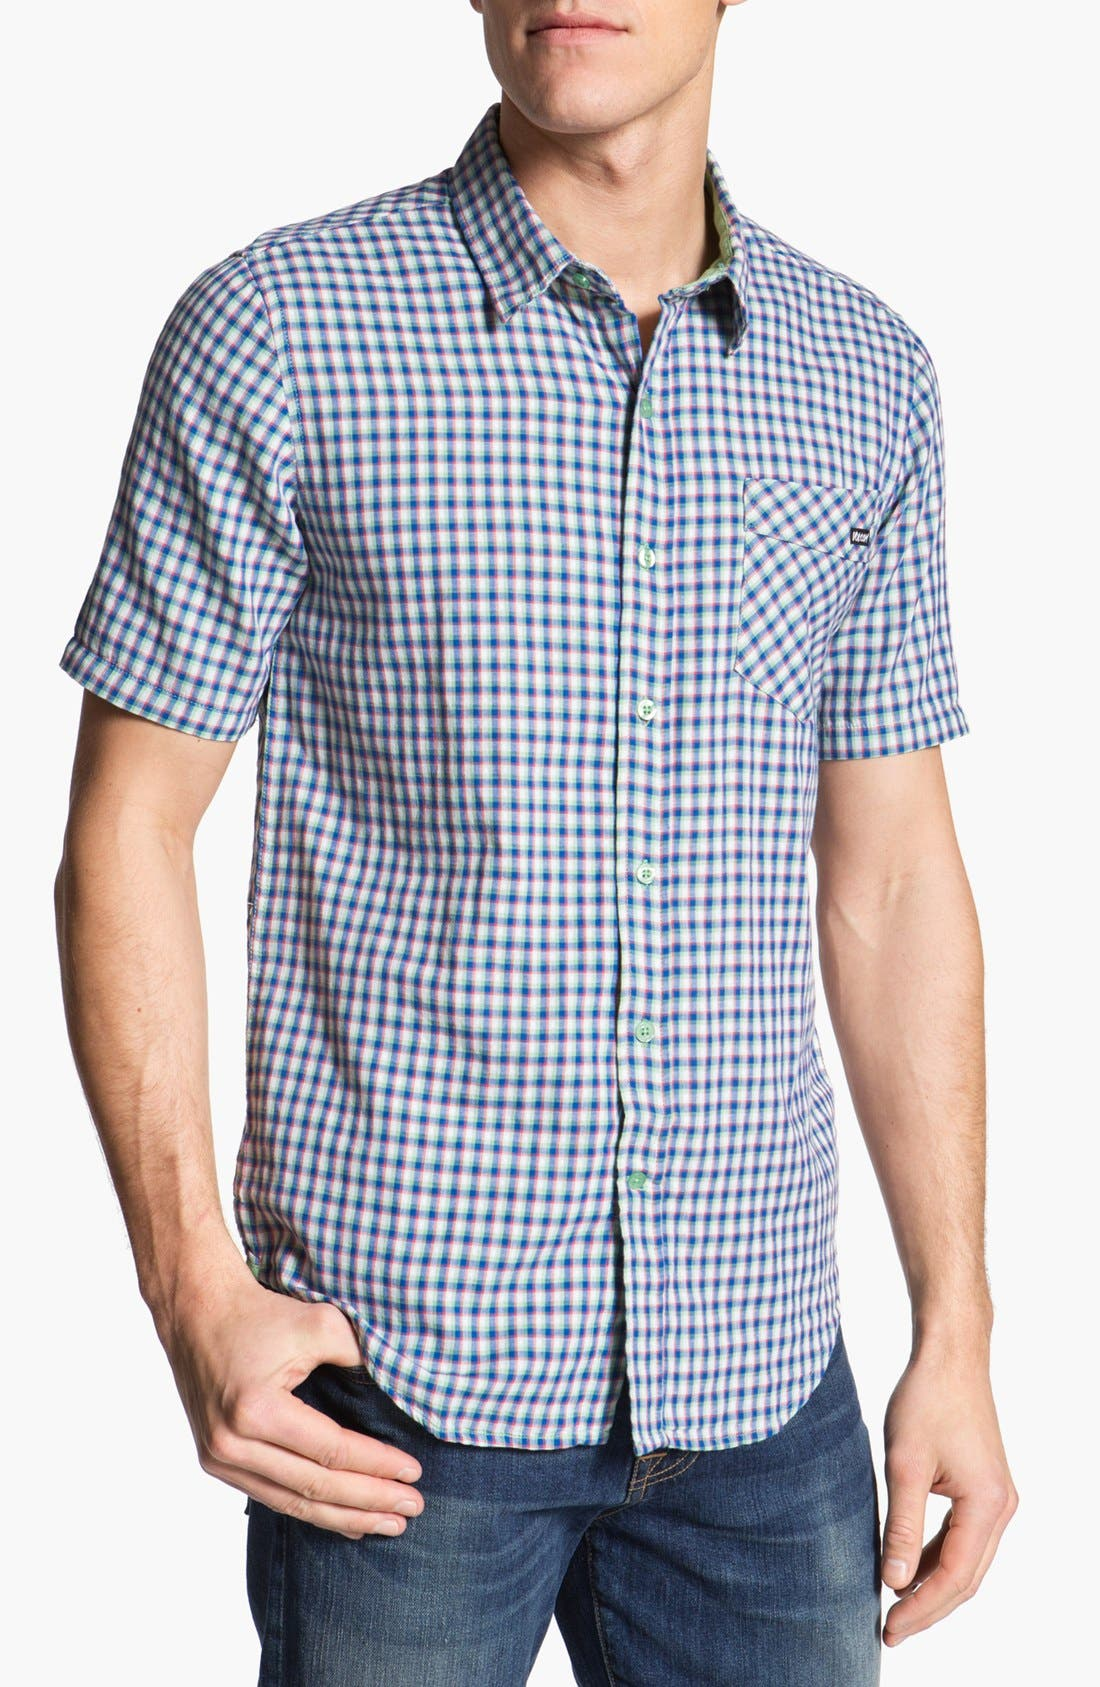 Main Image - Volcom 'Lanford' Short Sleeve Check Woven Shirt